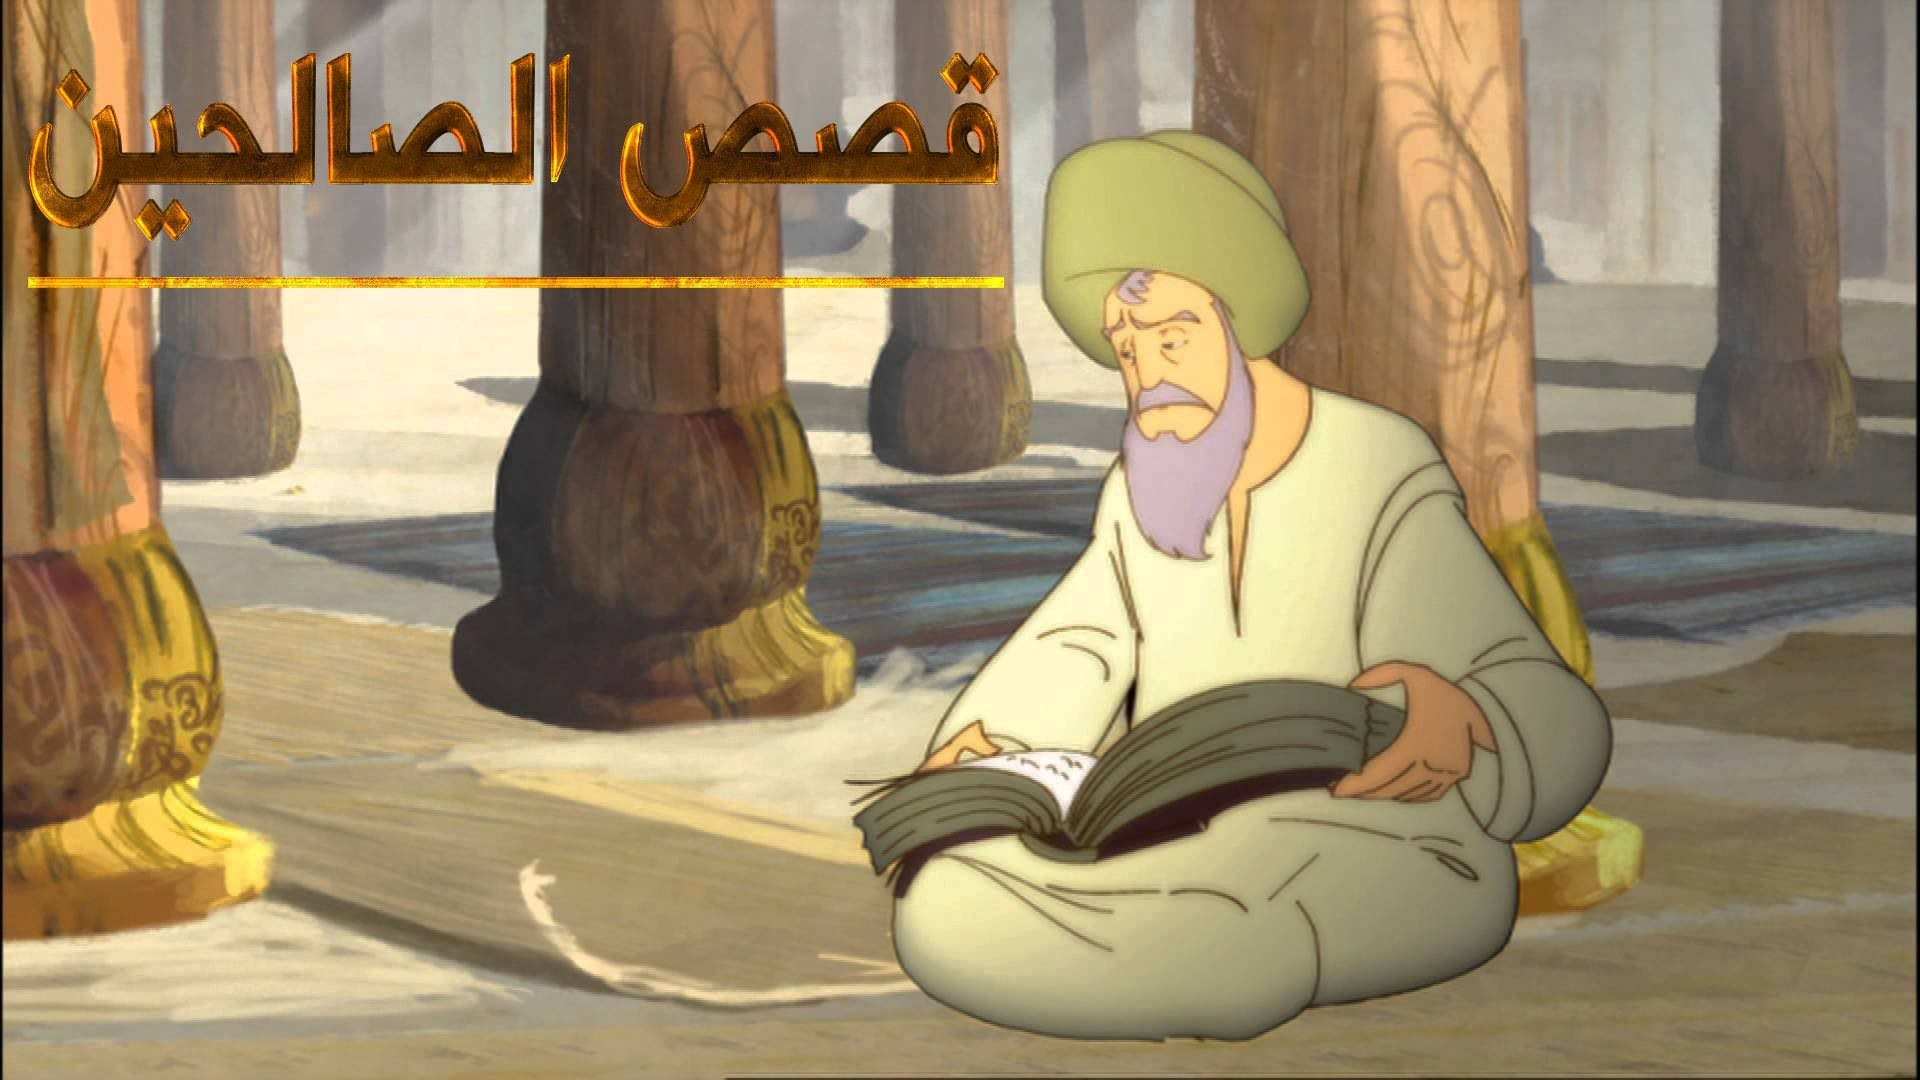 Pin By Mr Mohamed Abdelsalam On رمضان Ramadan Zelda Characters Character Fictional Characters